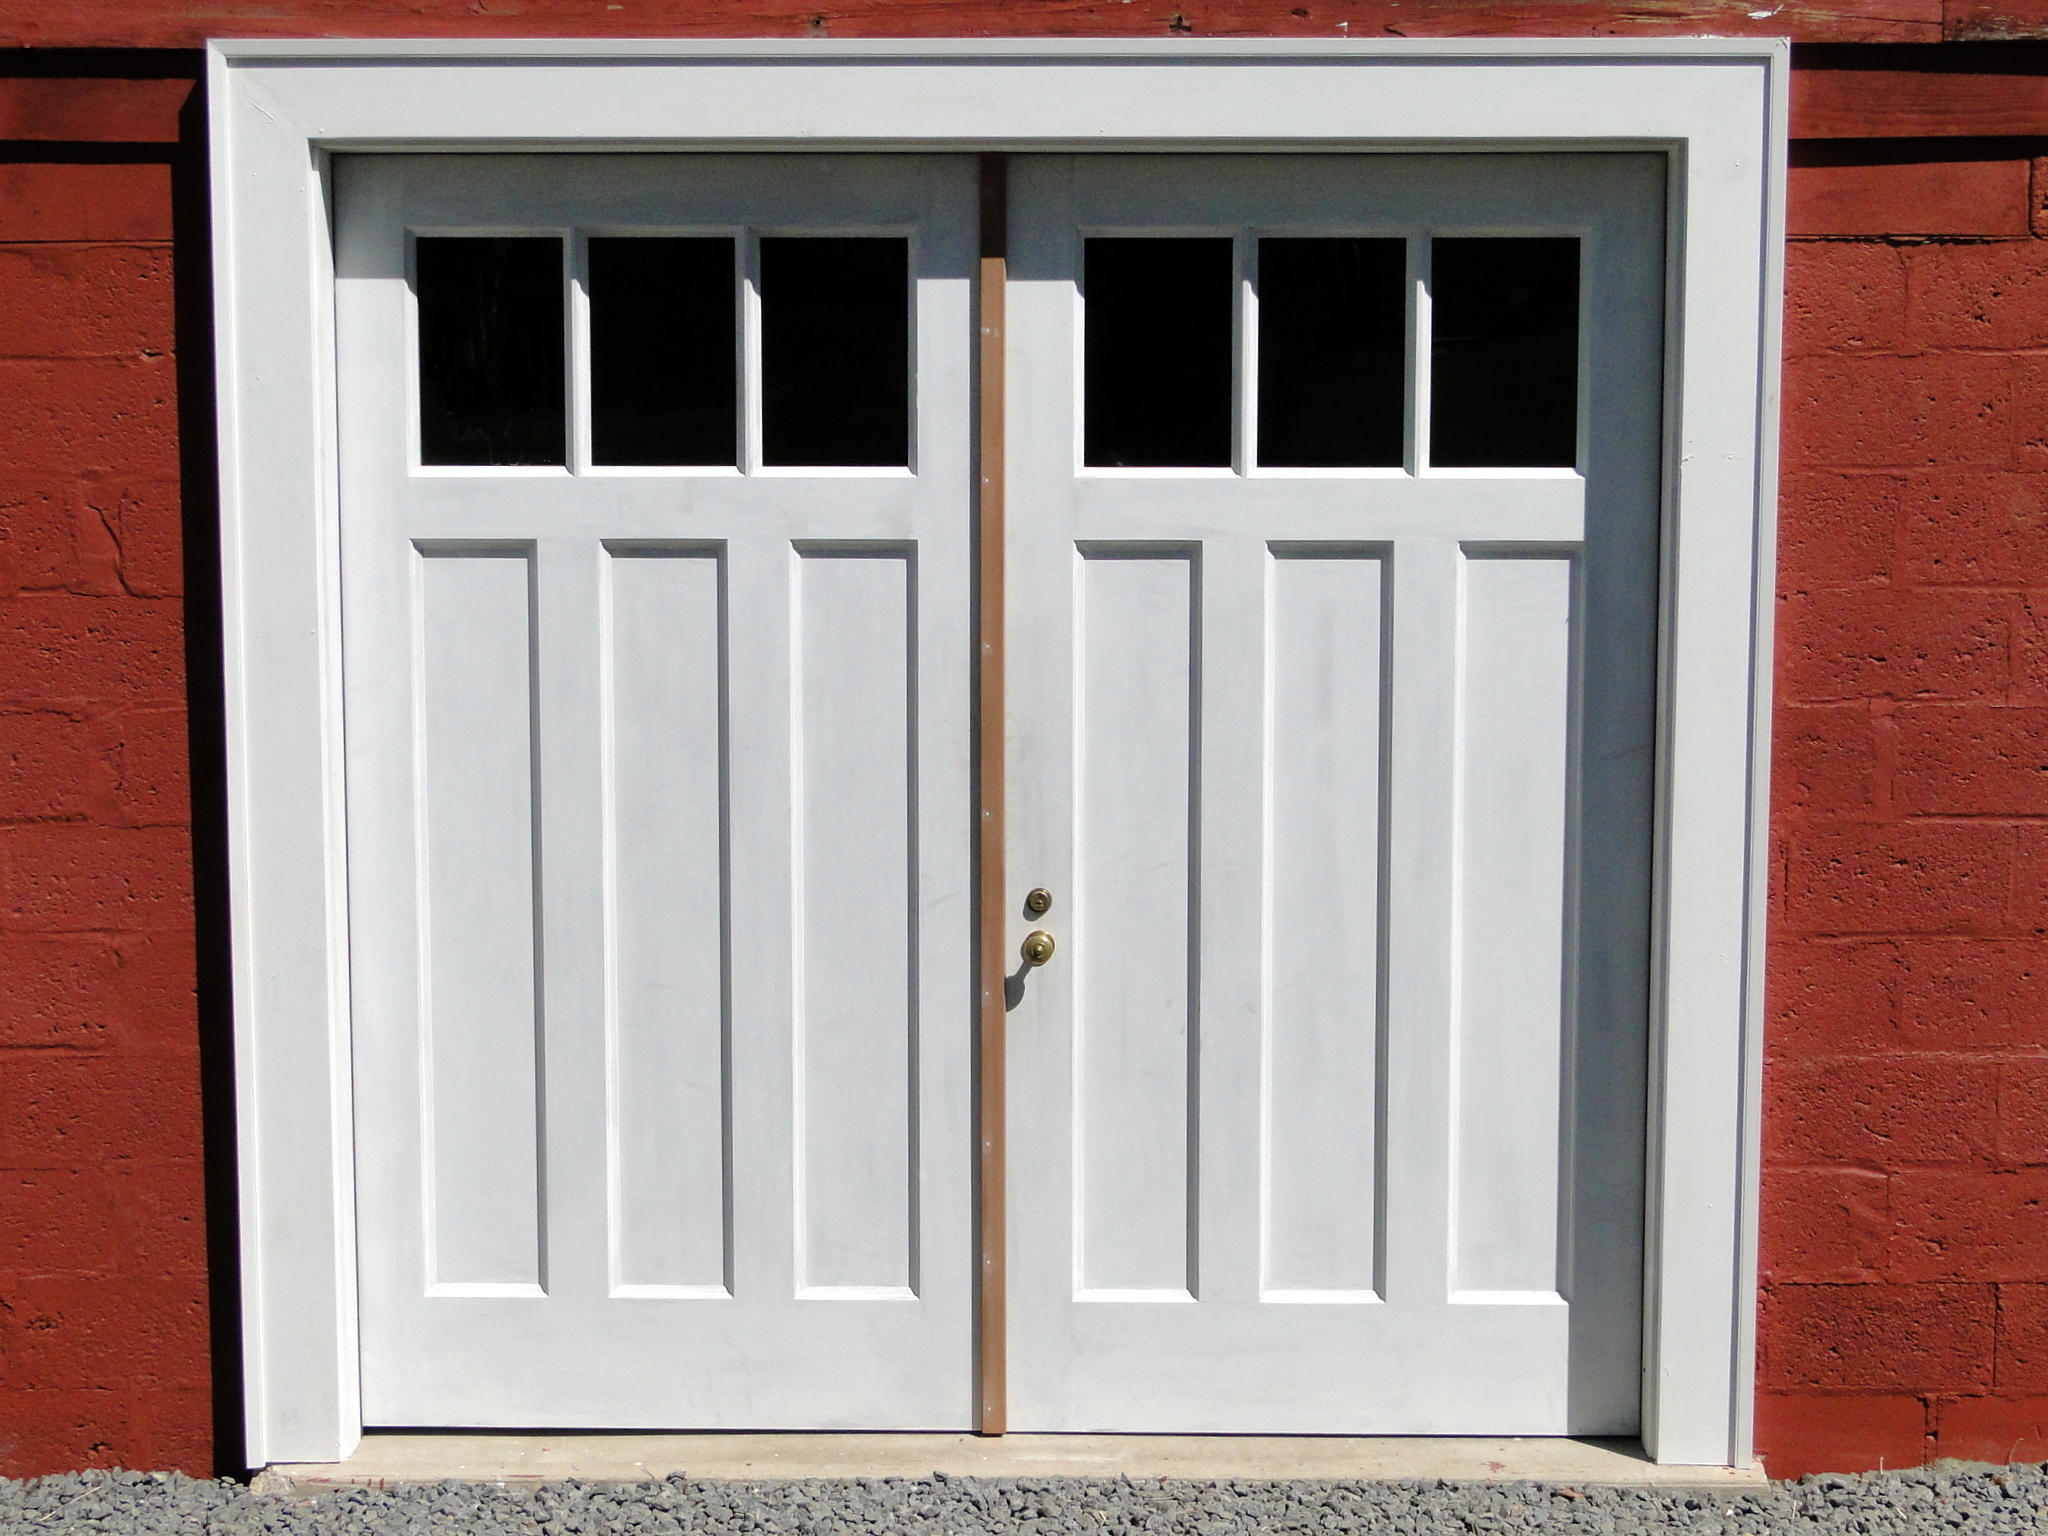 Garage doors in painted mahogany